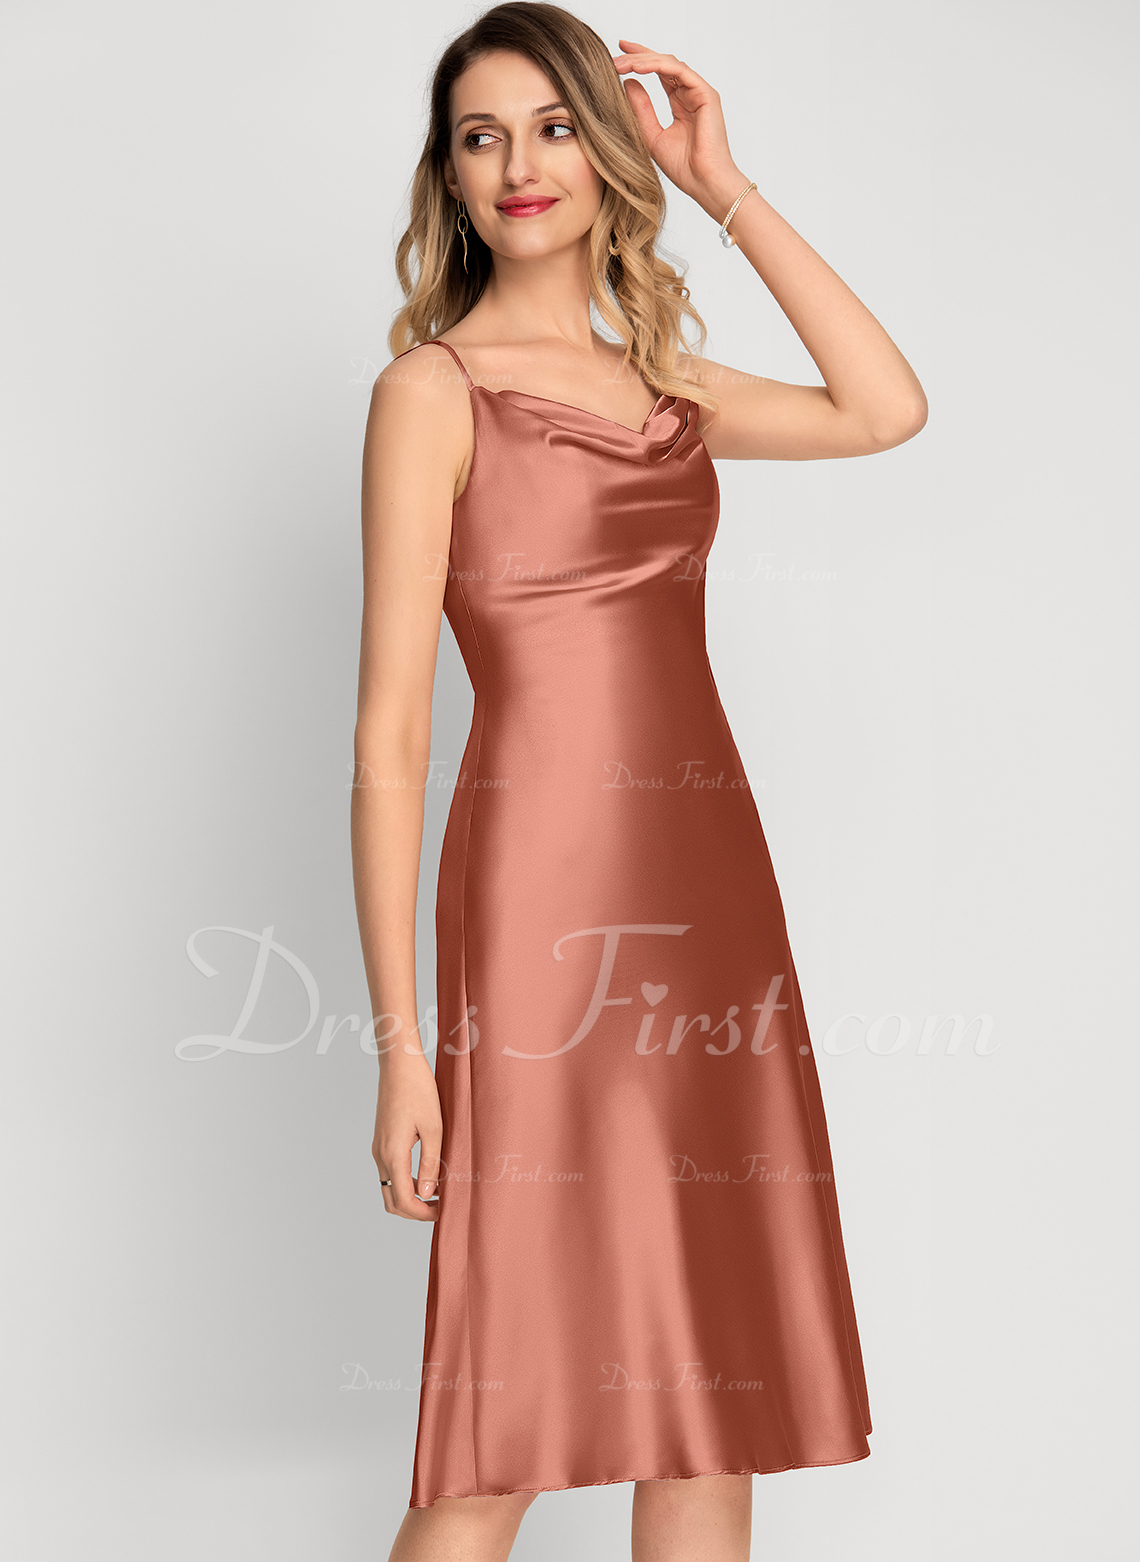 Cowl Neck Other Colors Dresses